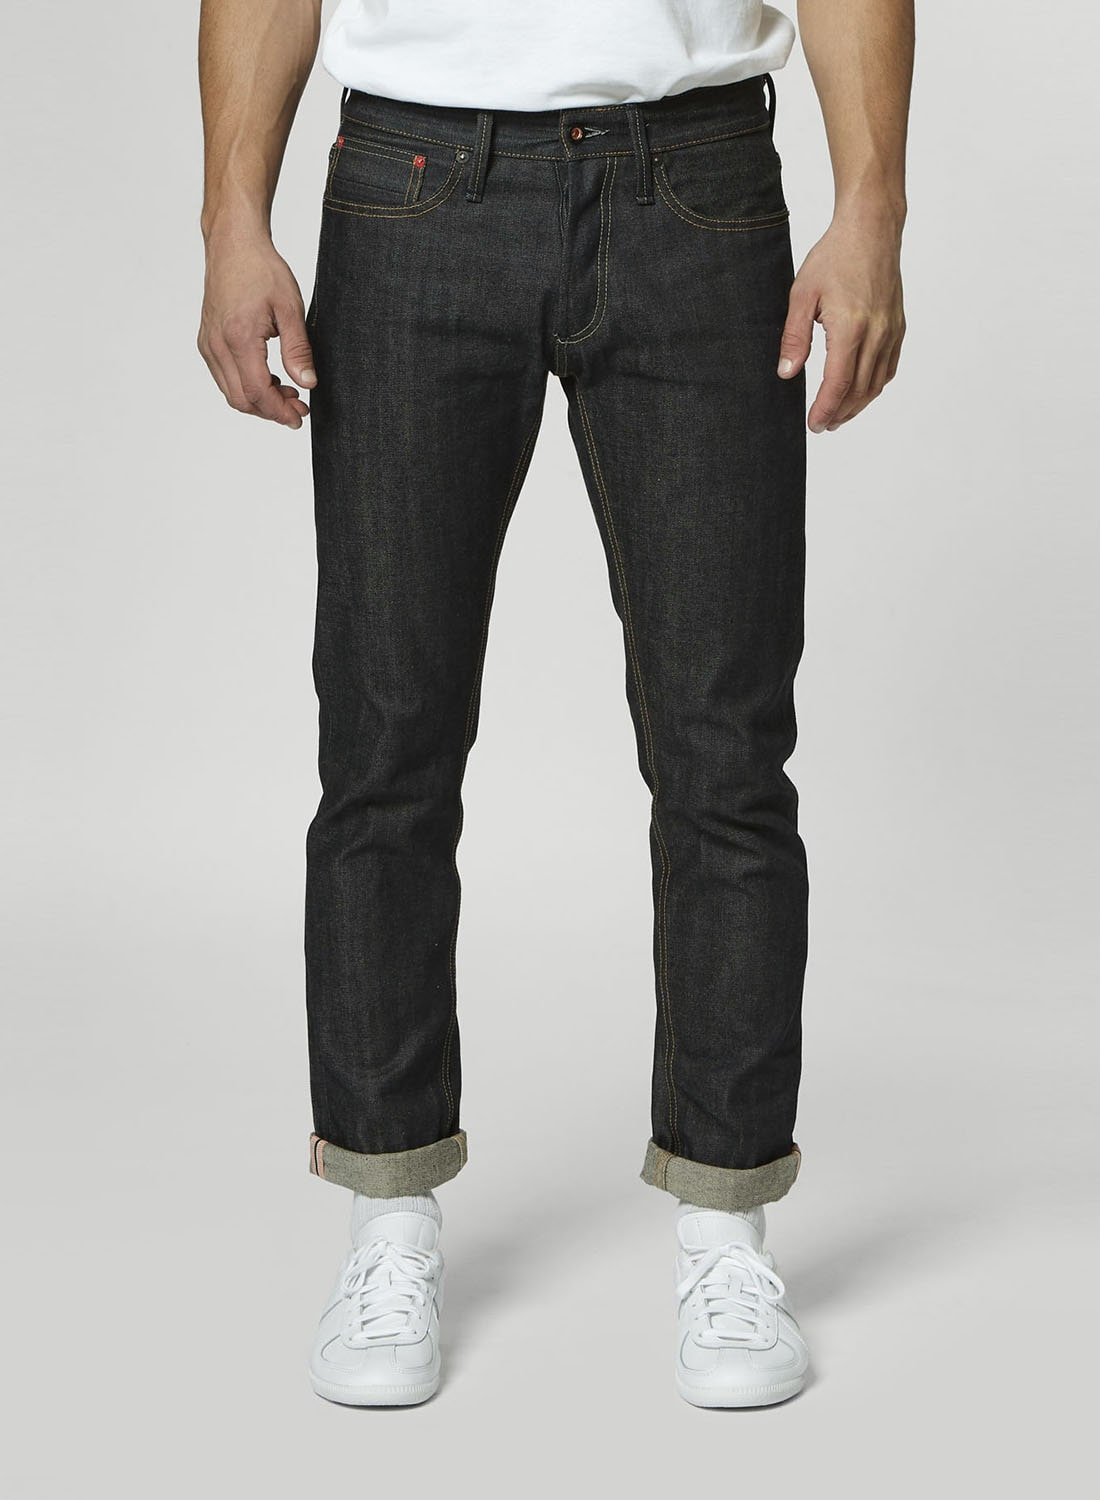 【JAPAN DENIM】 RAZOR MIJ10YVS